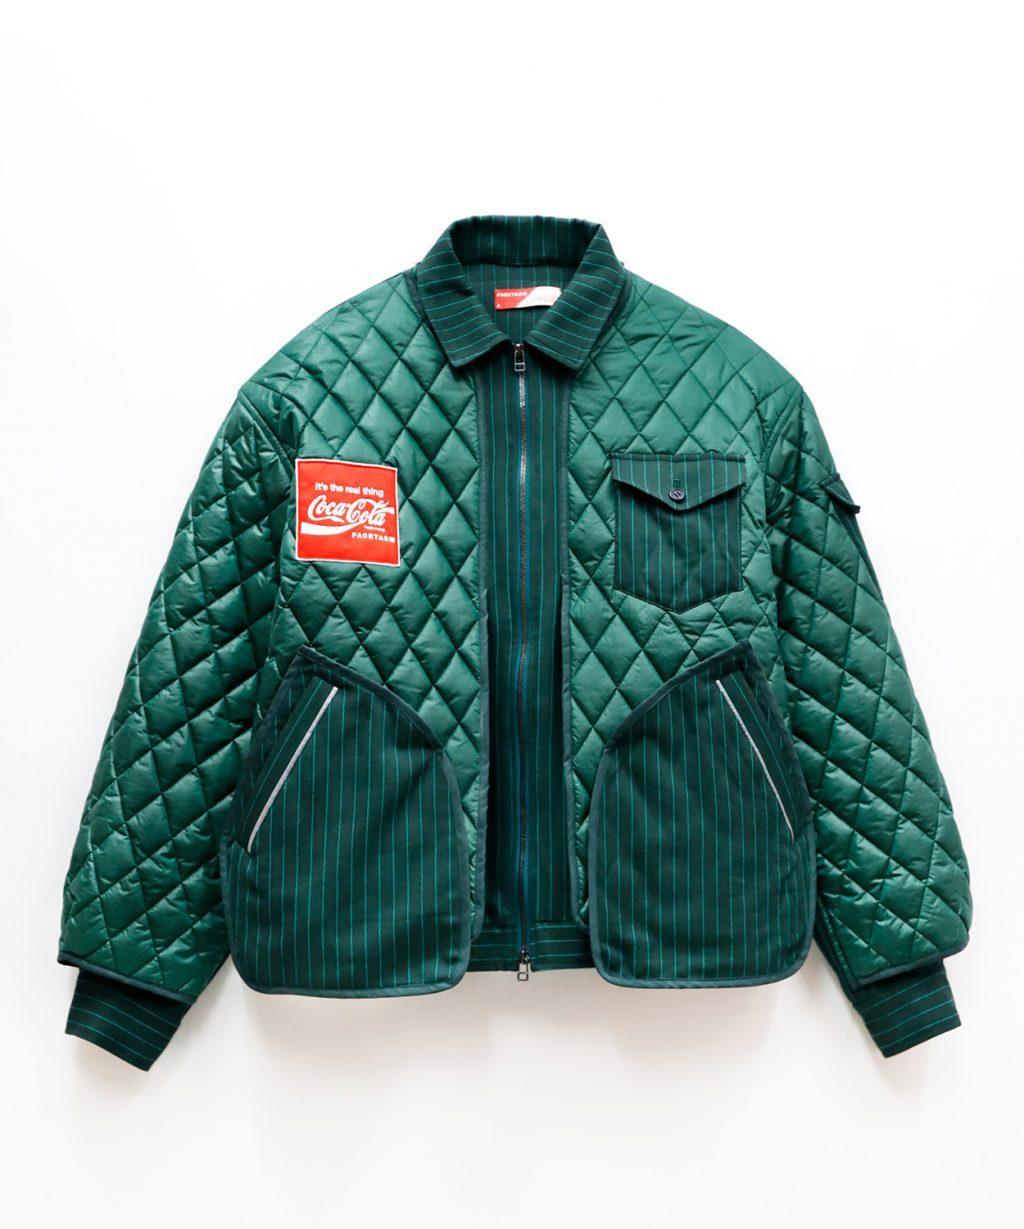 FACE-COCA-COLA-MIX-WORK-JACKET-green1-1024x1229.jpg